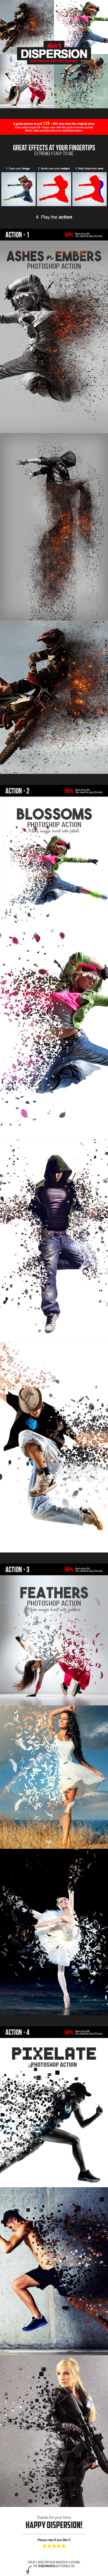 4-in-1 Dispersion Bundle Photoshop Action - Photo Effects Actions